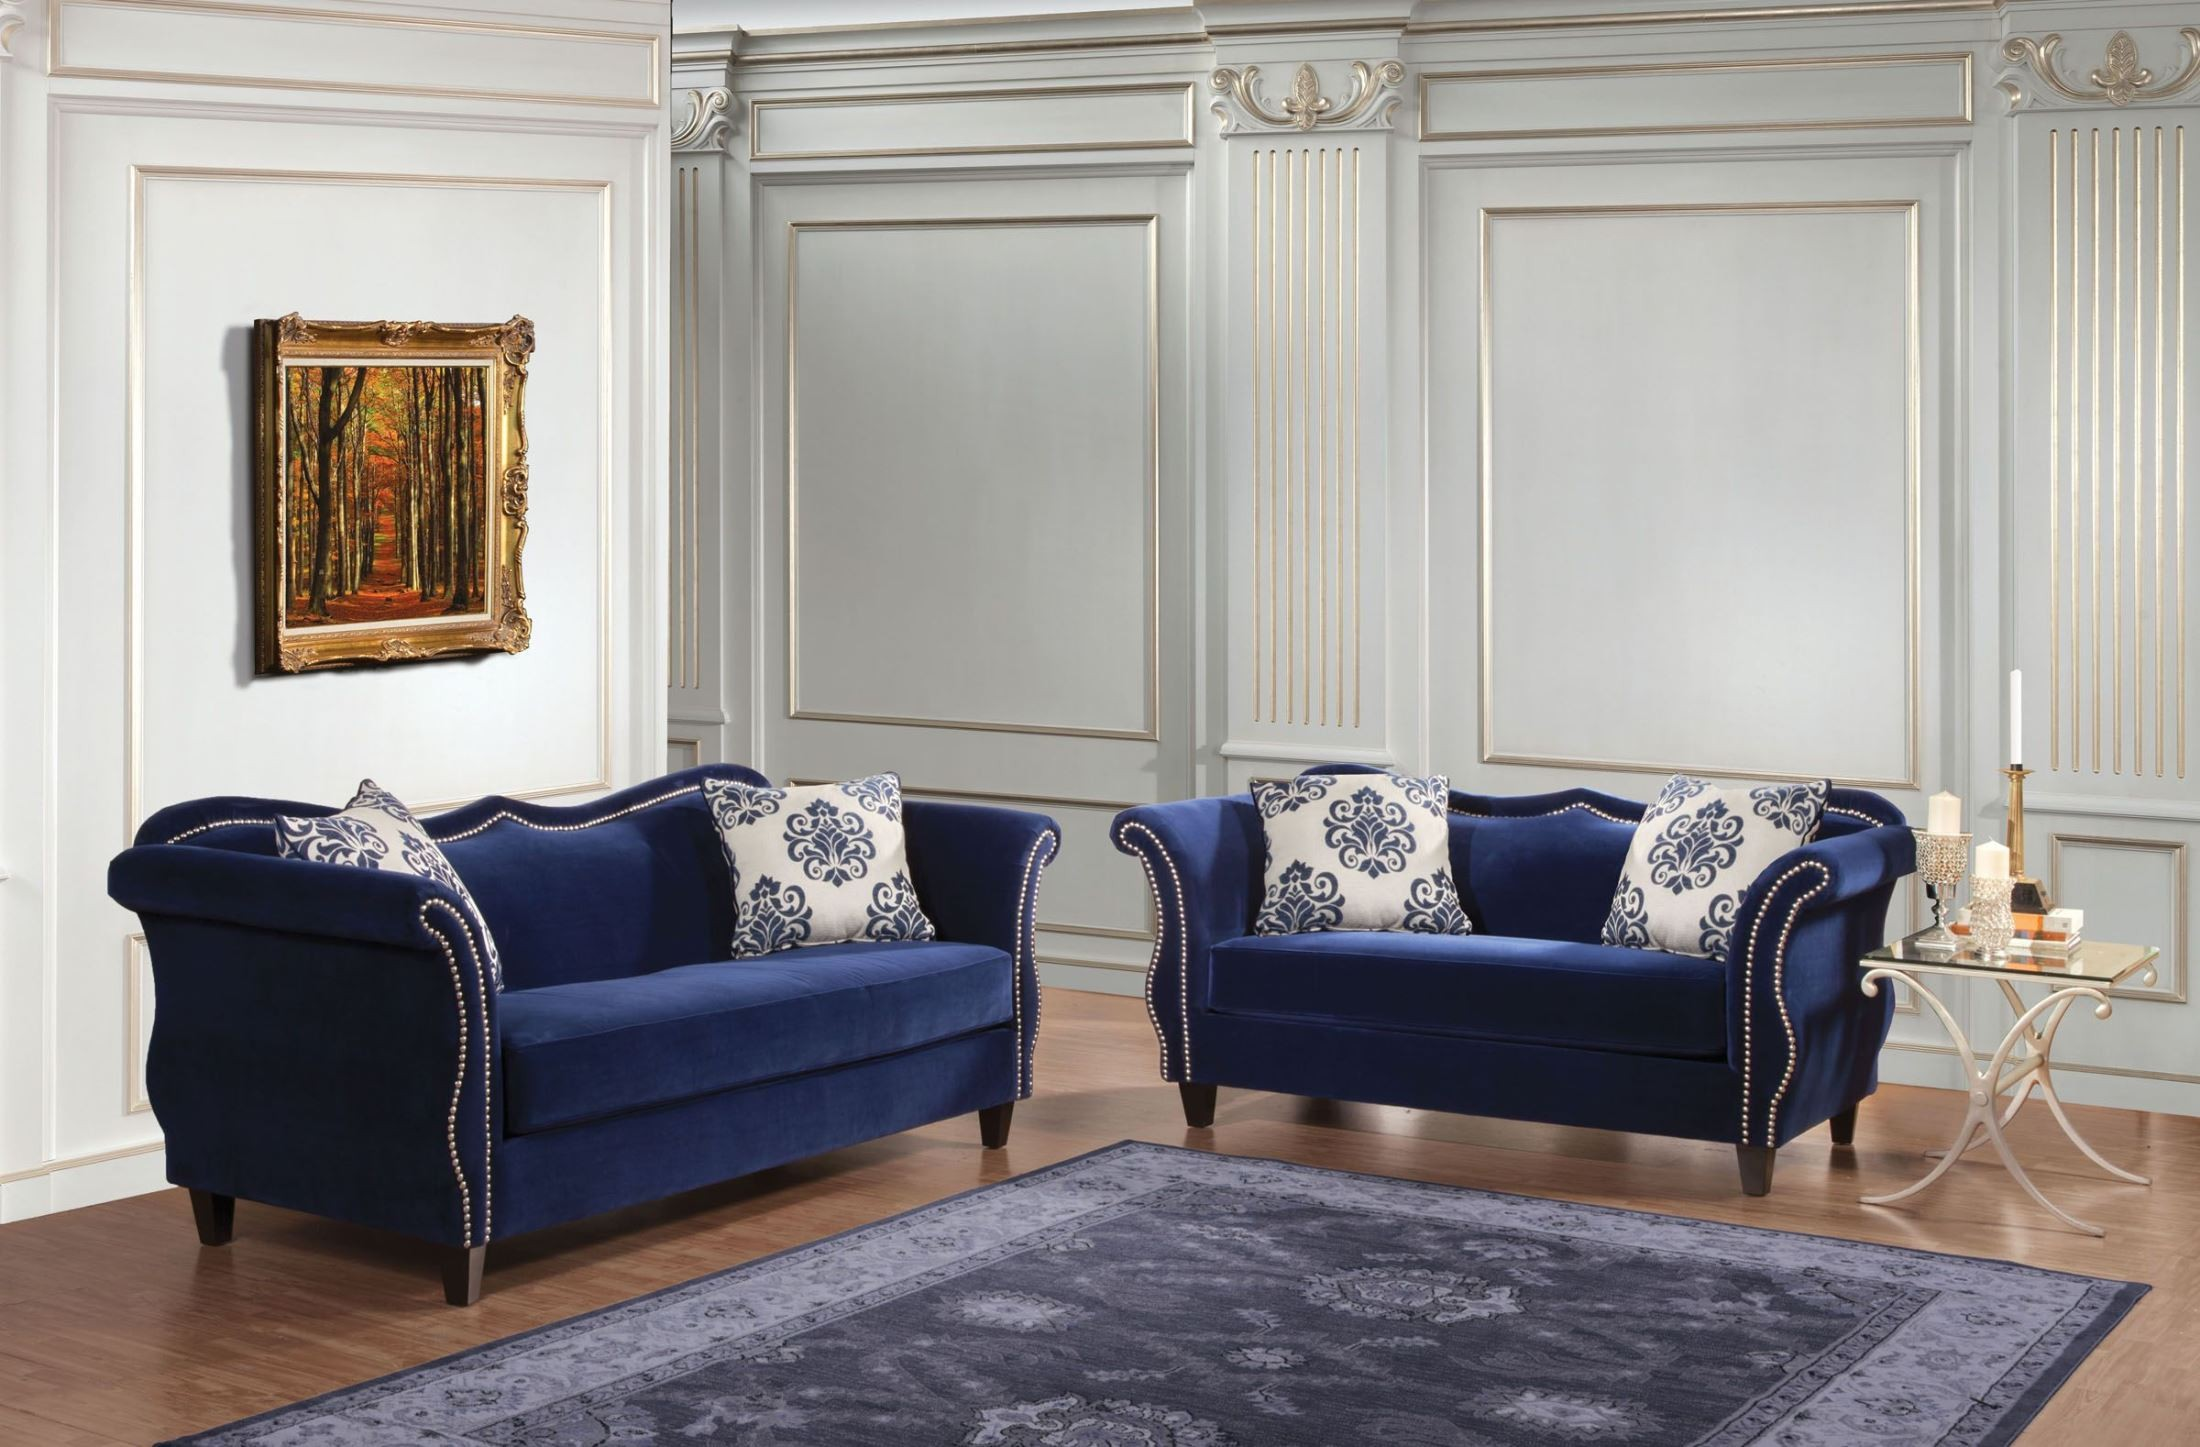 Zaffiro royal blue living room set sm2231 sf furniture of america - Living spaces living room sets ...